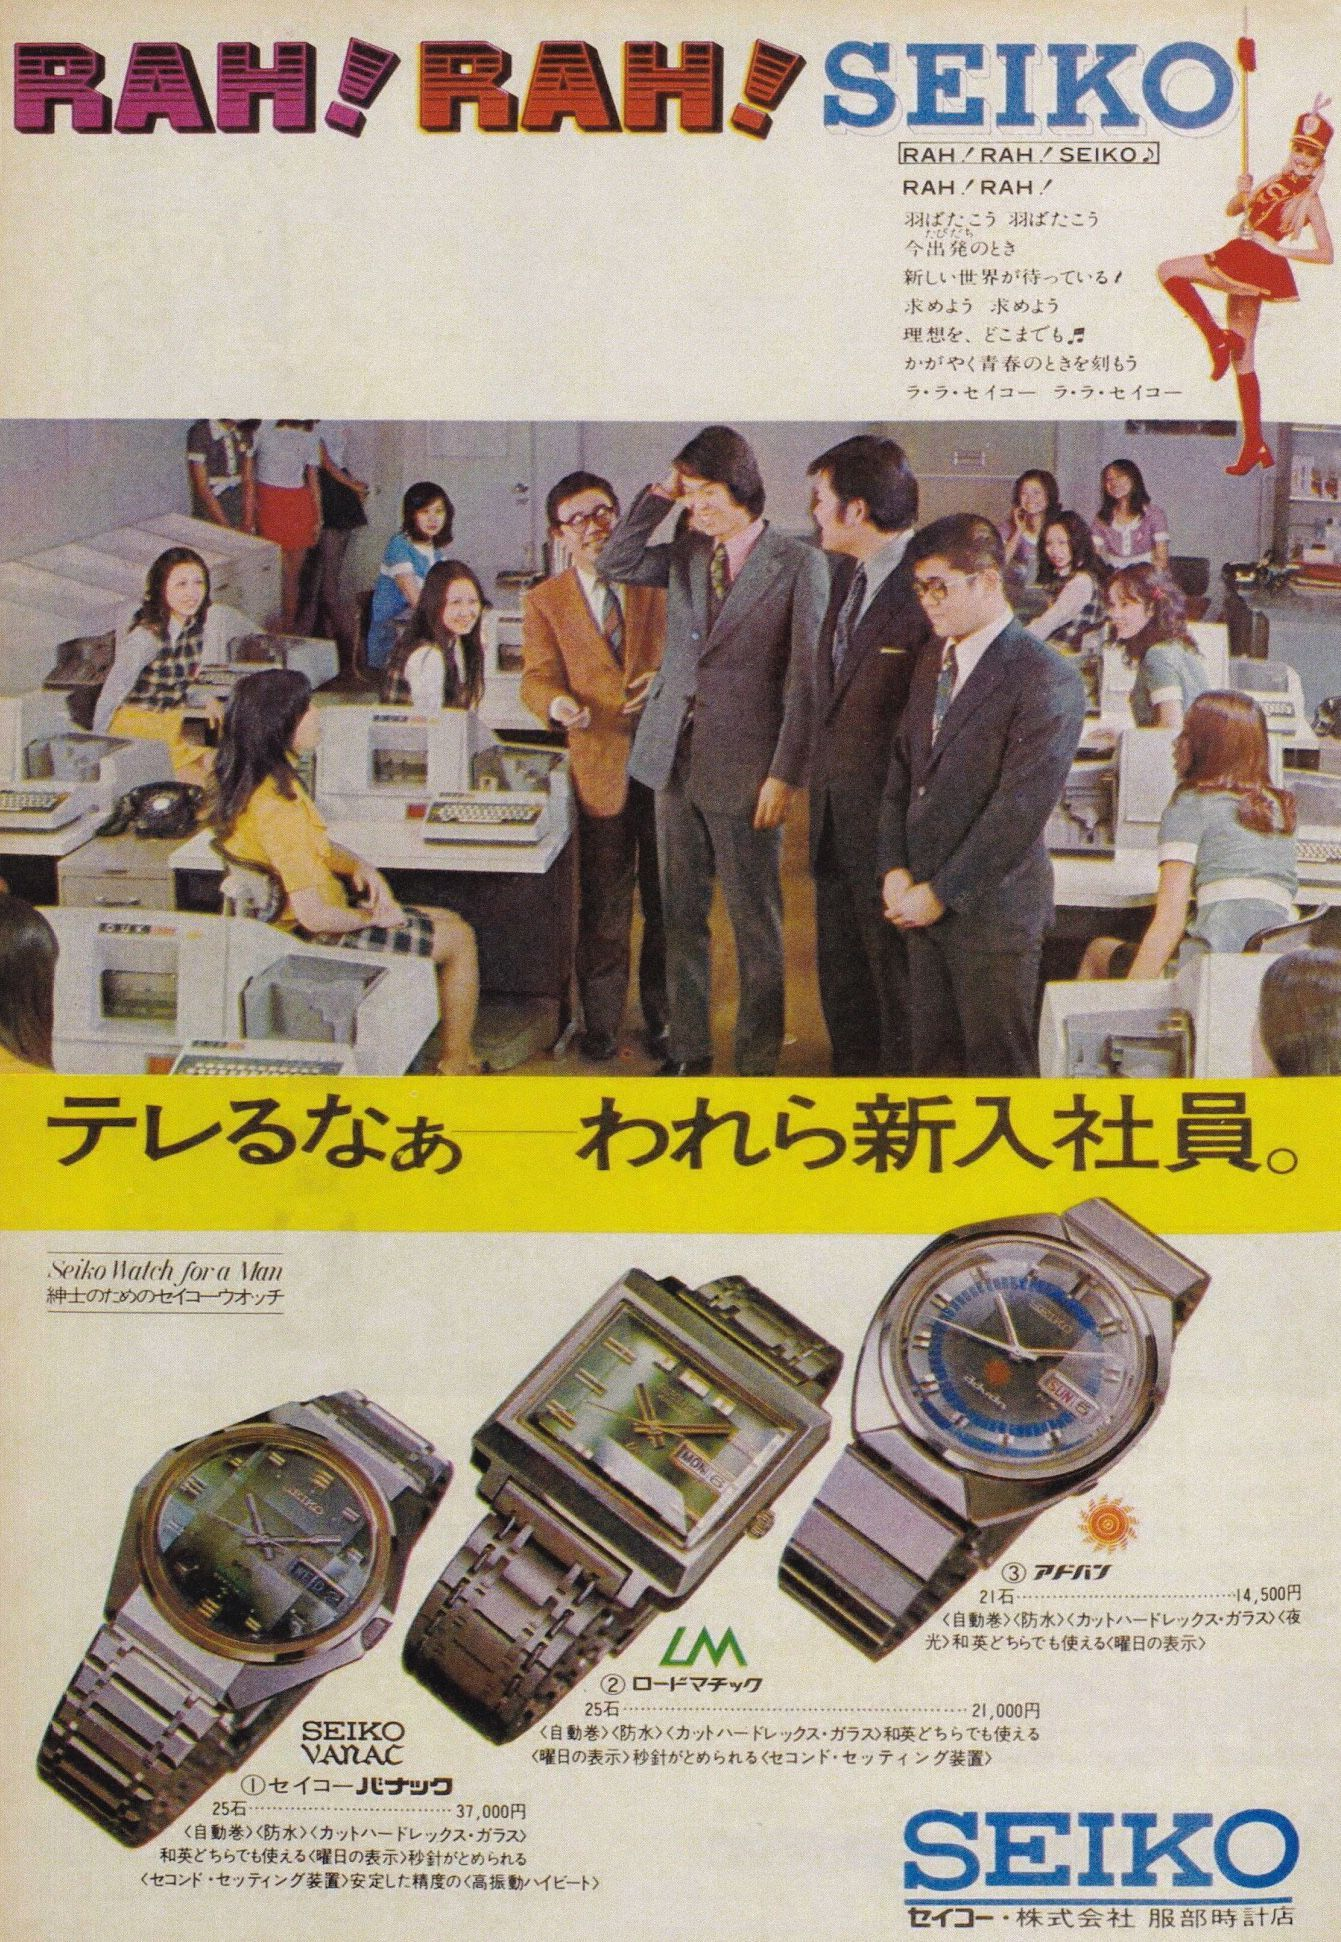 Seiko LM Advert 2